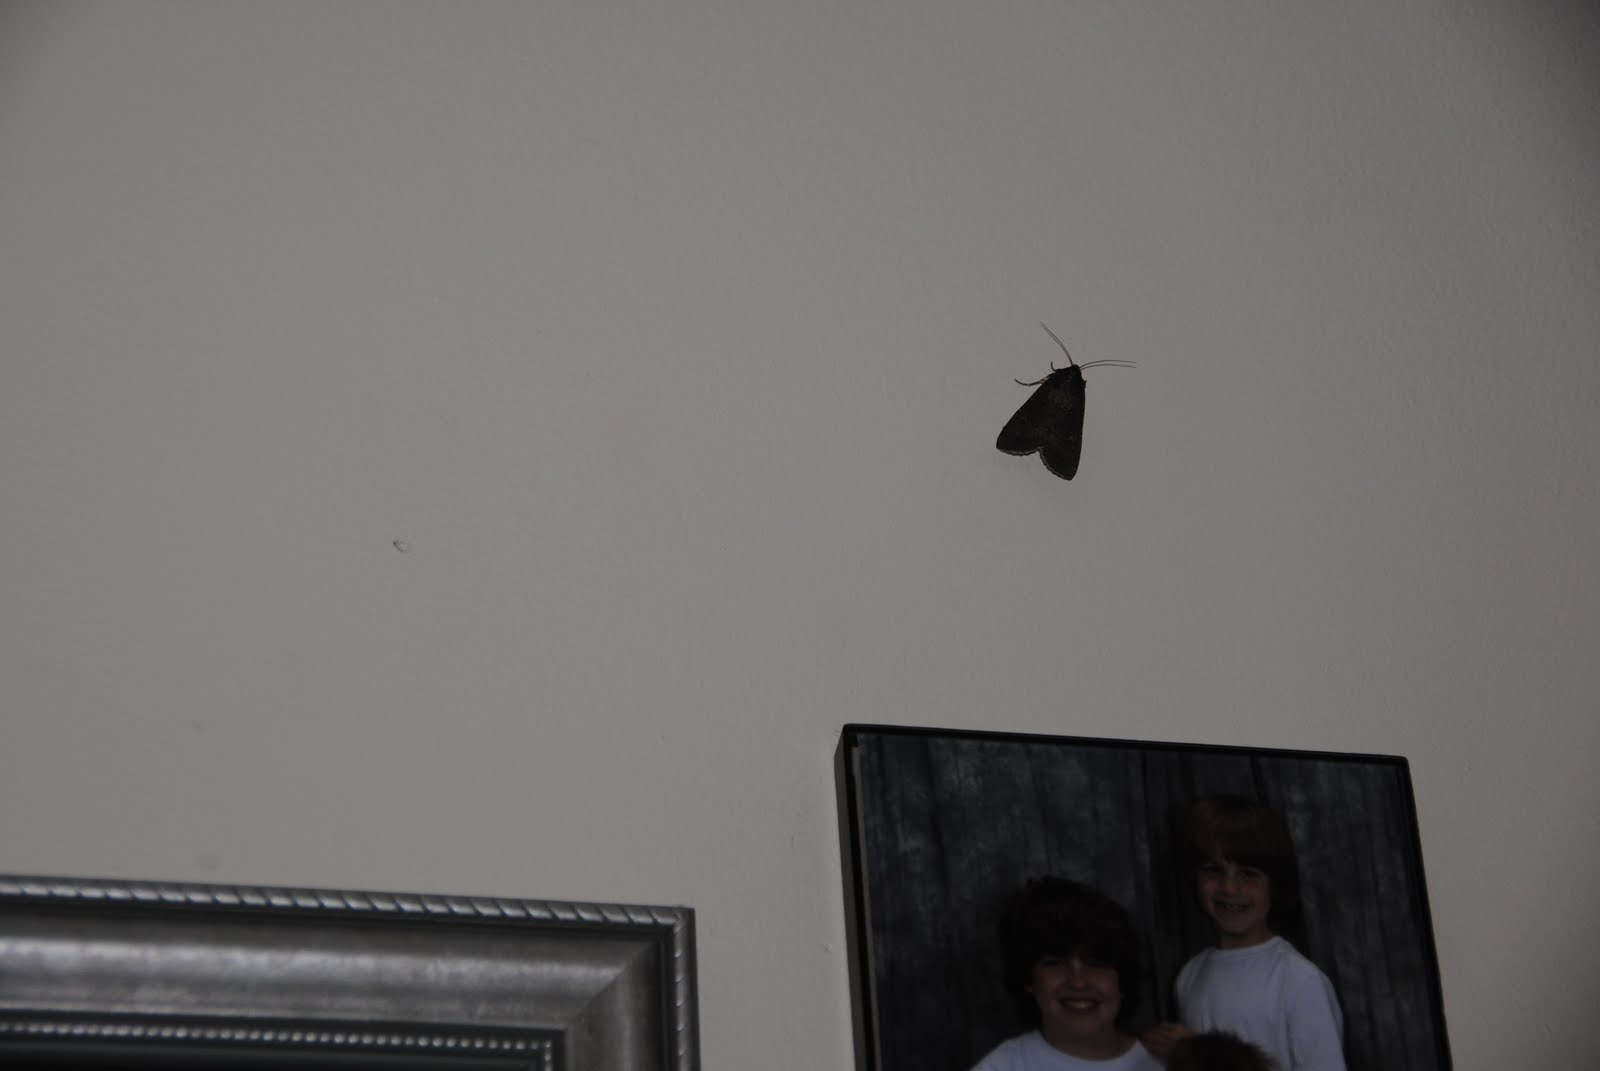 Killer Moth  The Sequel  BatMoth s Revenge. Because I Said So  The official Blog of Author and Mom Blogger